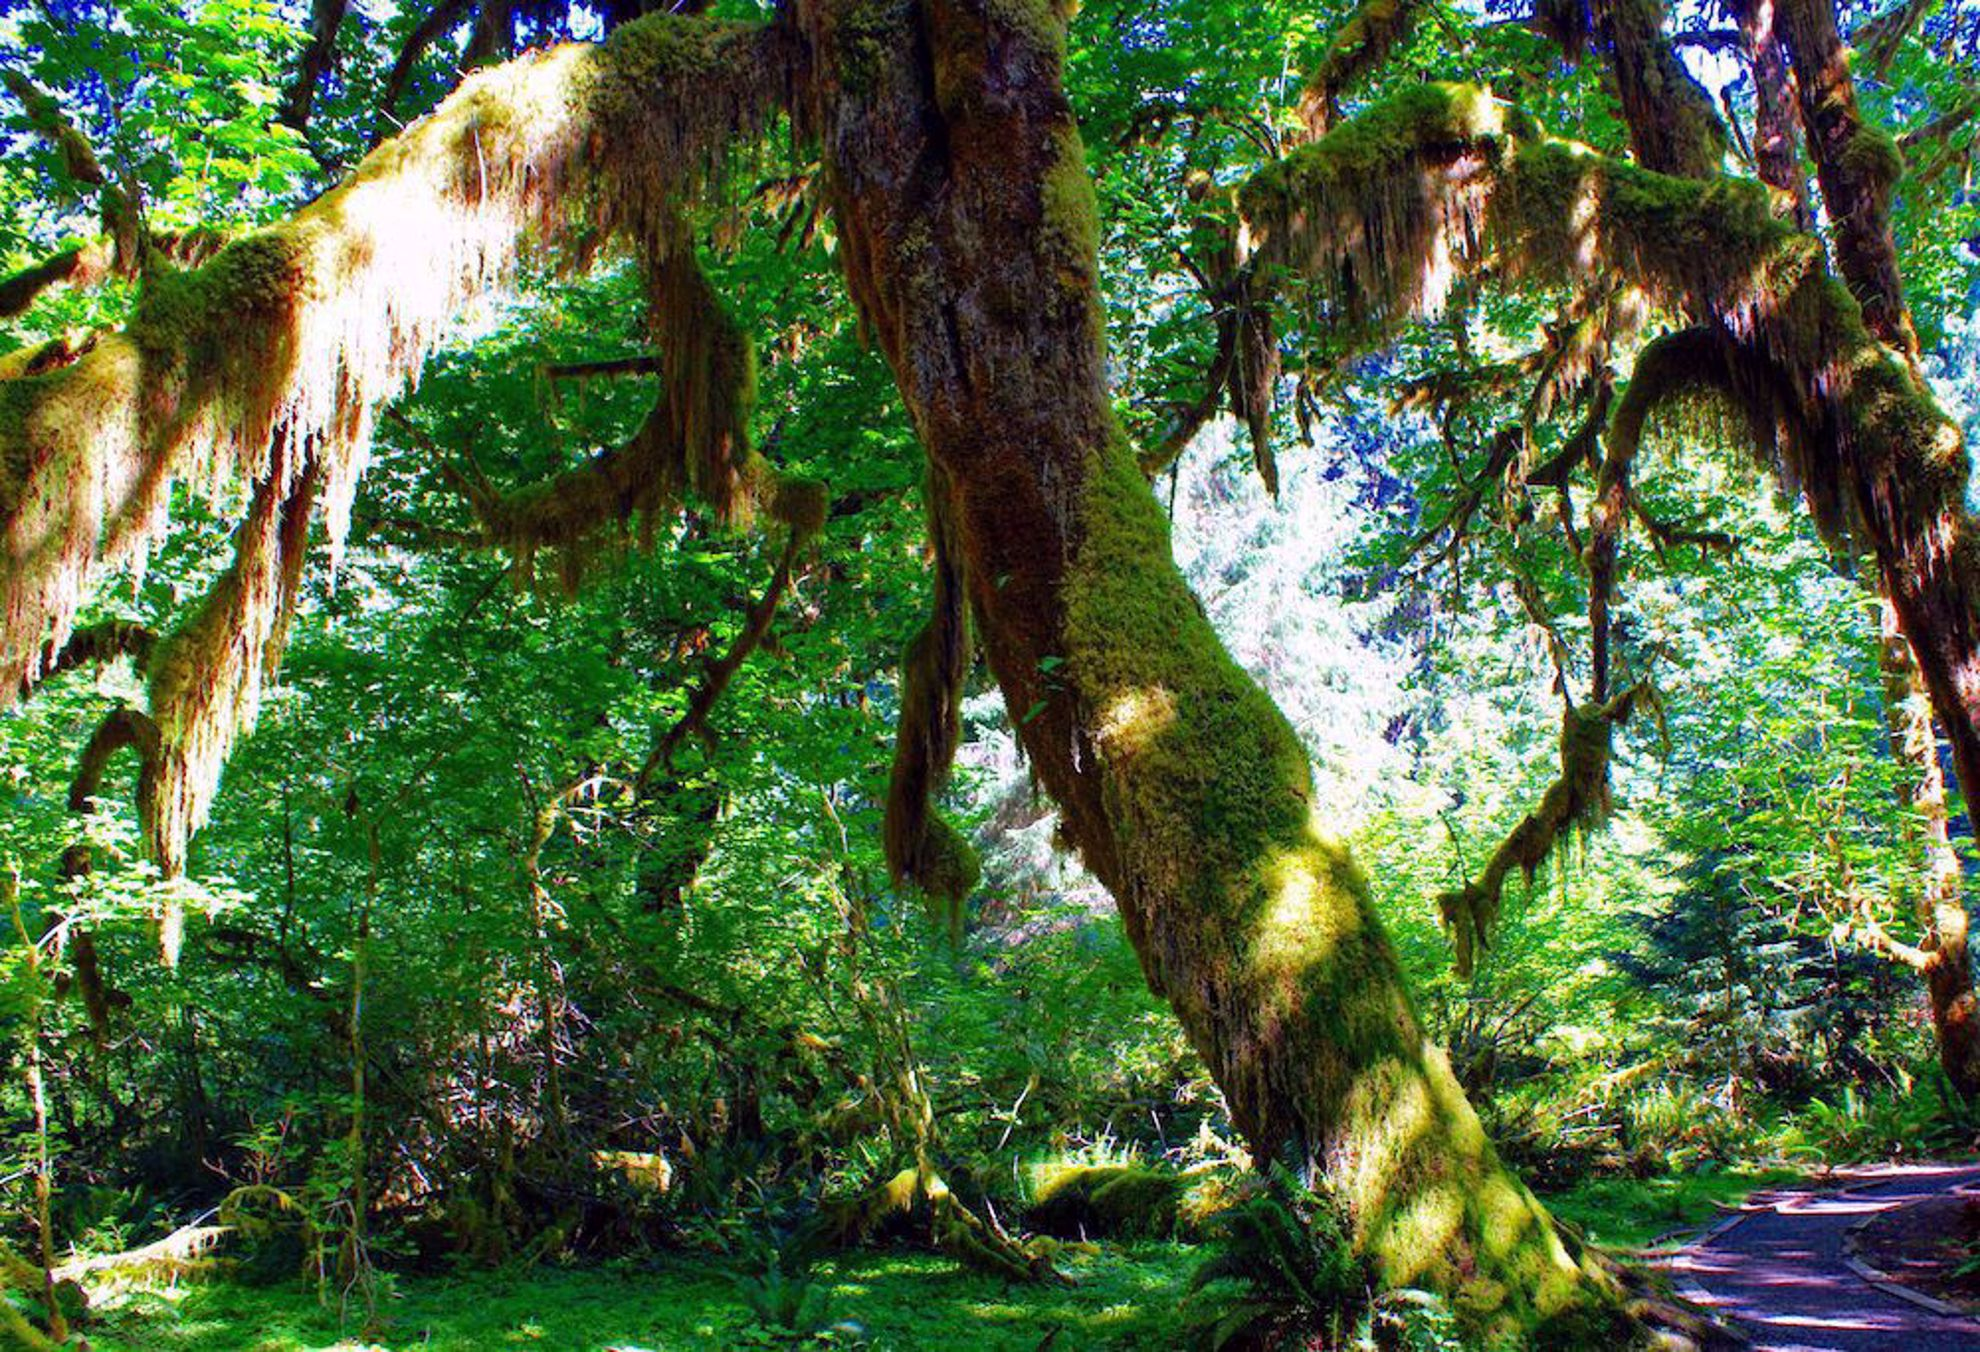 Mossy trees in Forks